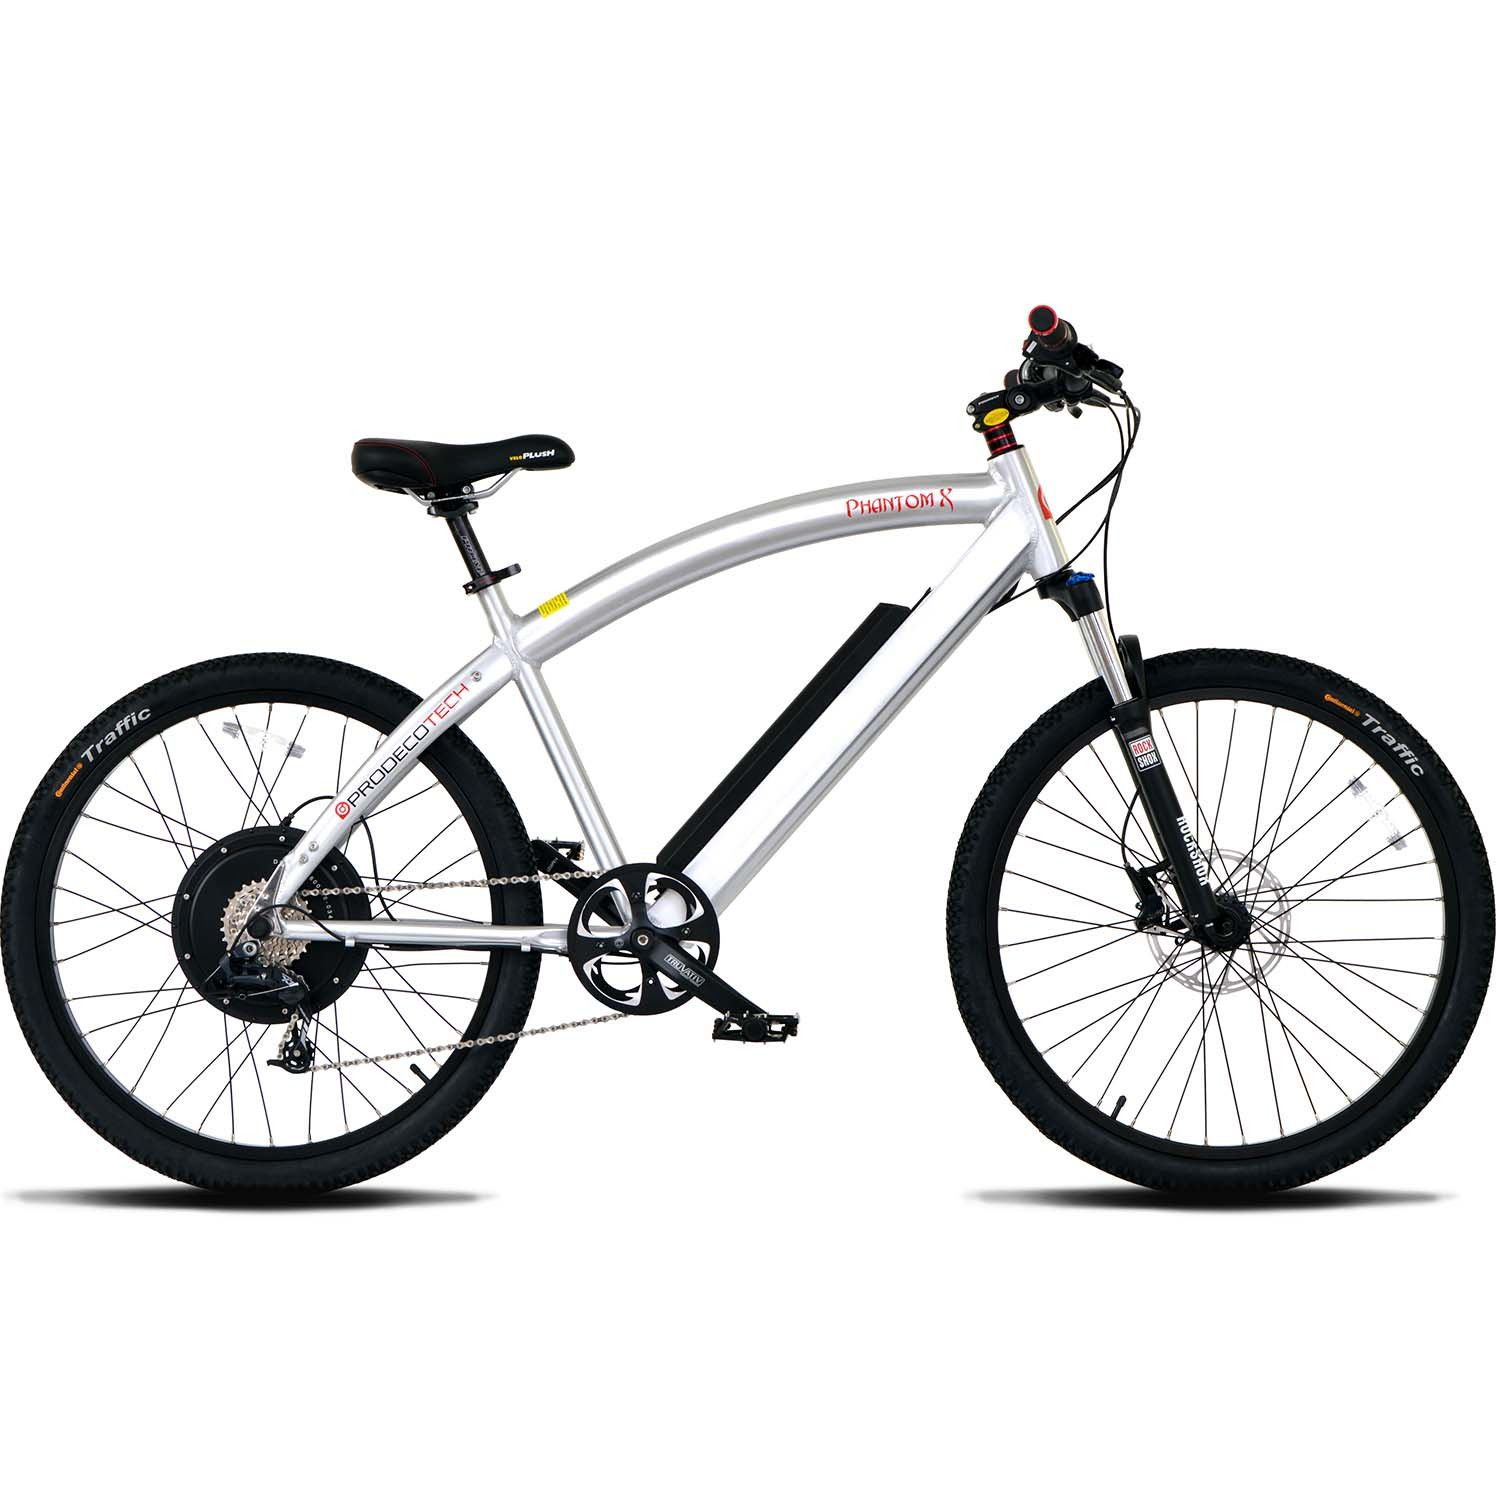 ProdecoTech Phantom X v5 36V 600W Cruiser Electric Bicycle